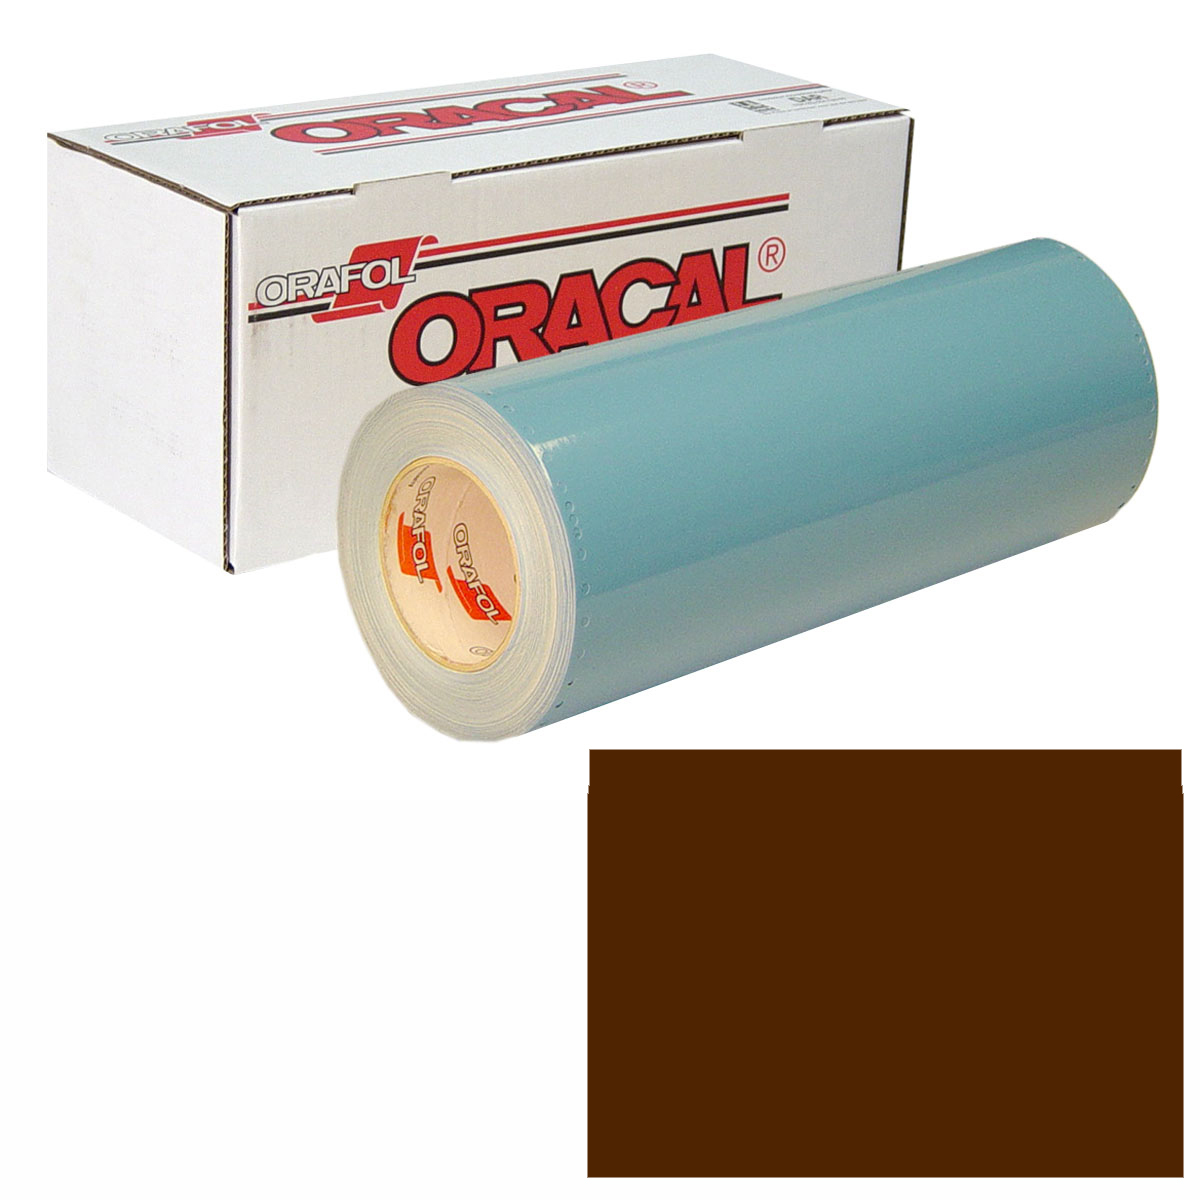 ORACAL 751 15In X 50Yd 080 Brown